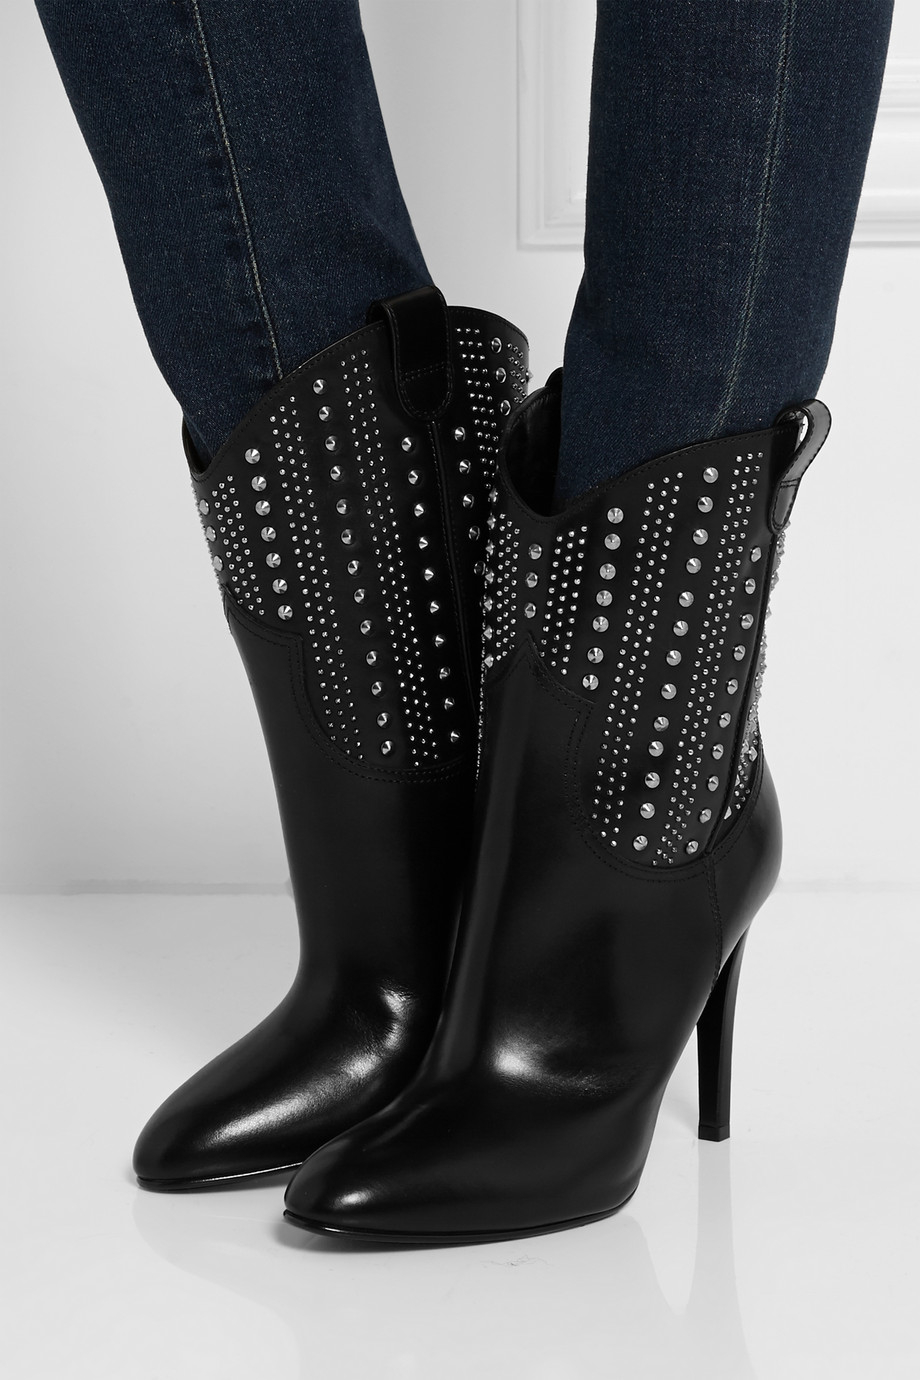 Saint Laurent Debbie 100 Studded Ankle Boots cheap store free shipping exclusive sast sale online t9JykV